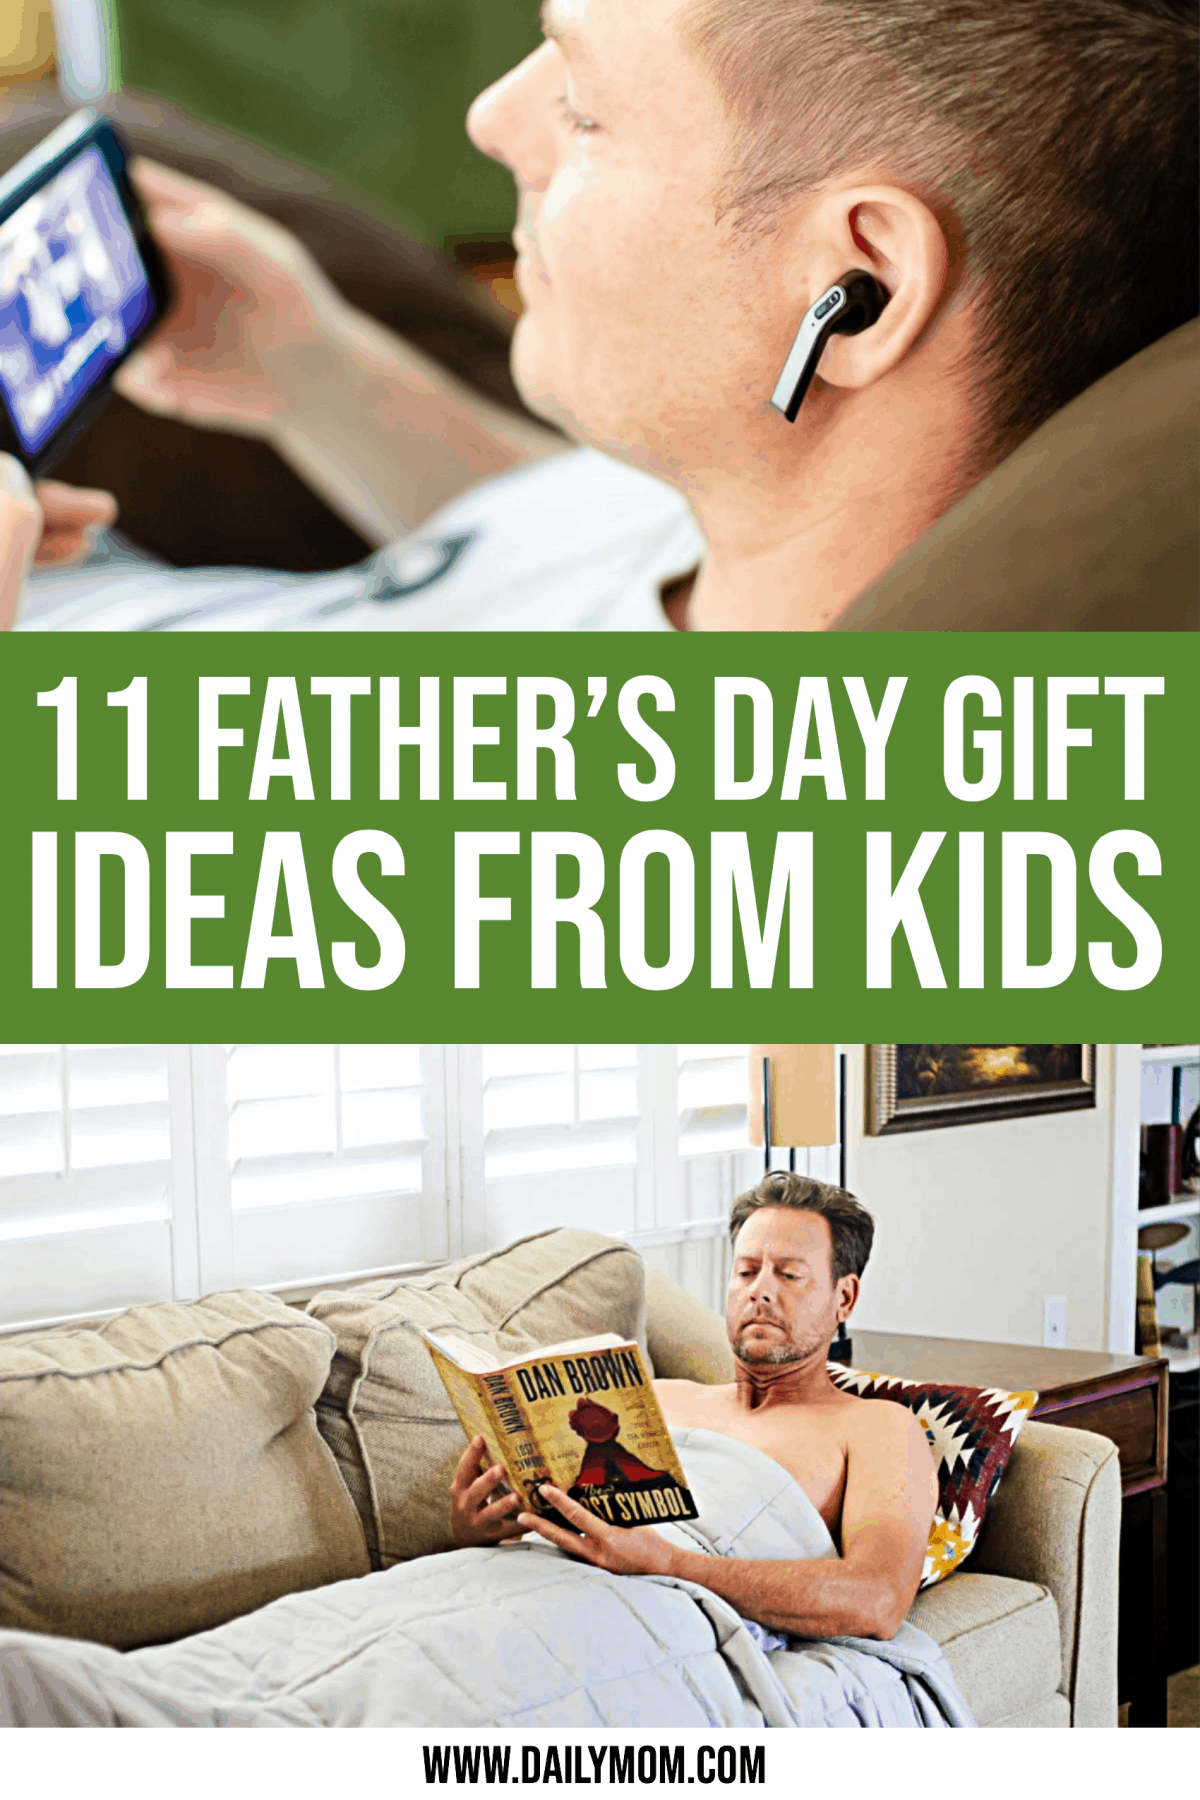 10 Unique Father's Day Gifts From Kids